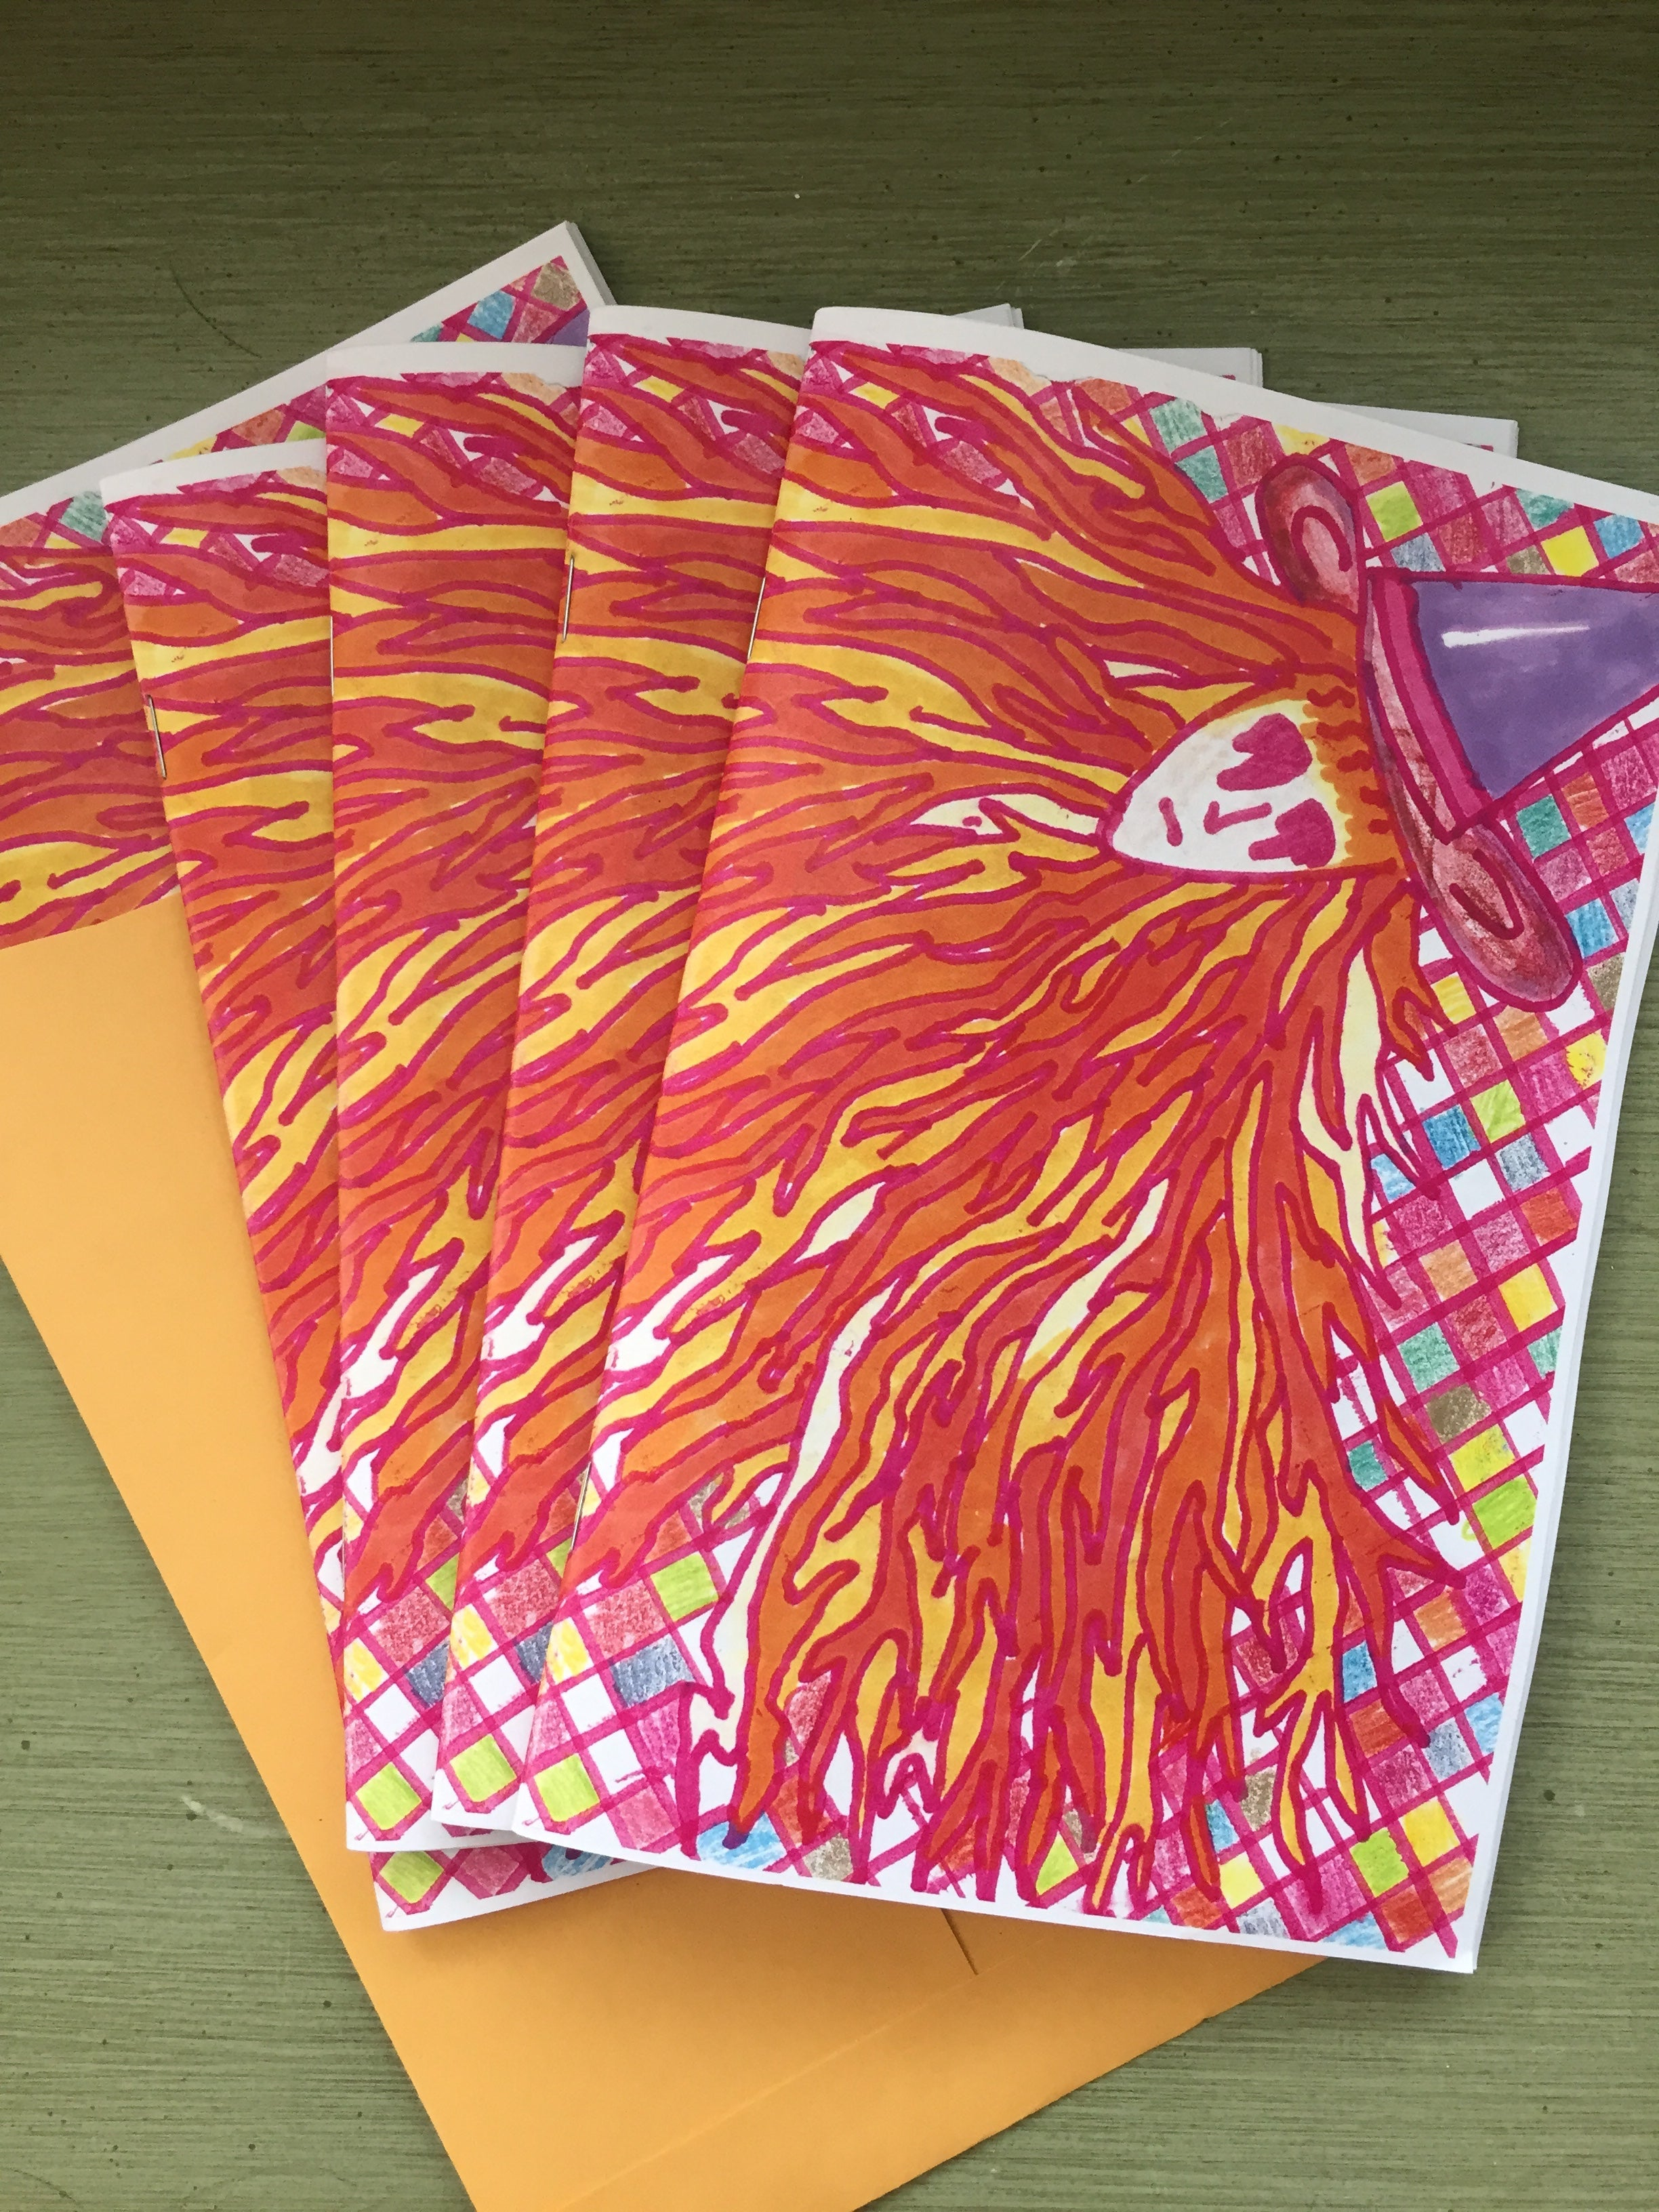 Re-Issue Zine! Circa 2009! BACK FROM THE PRESS